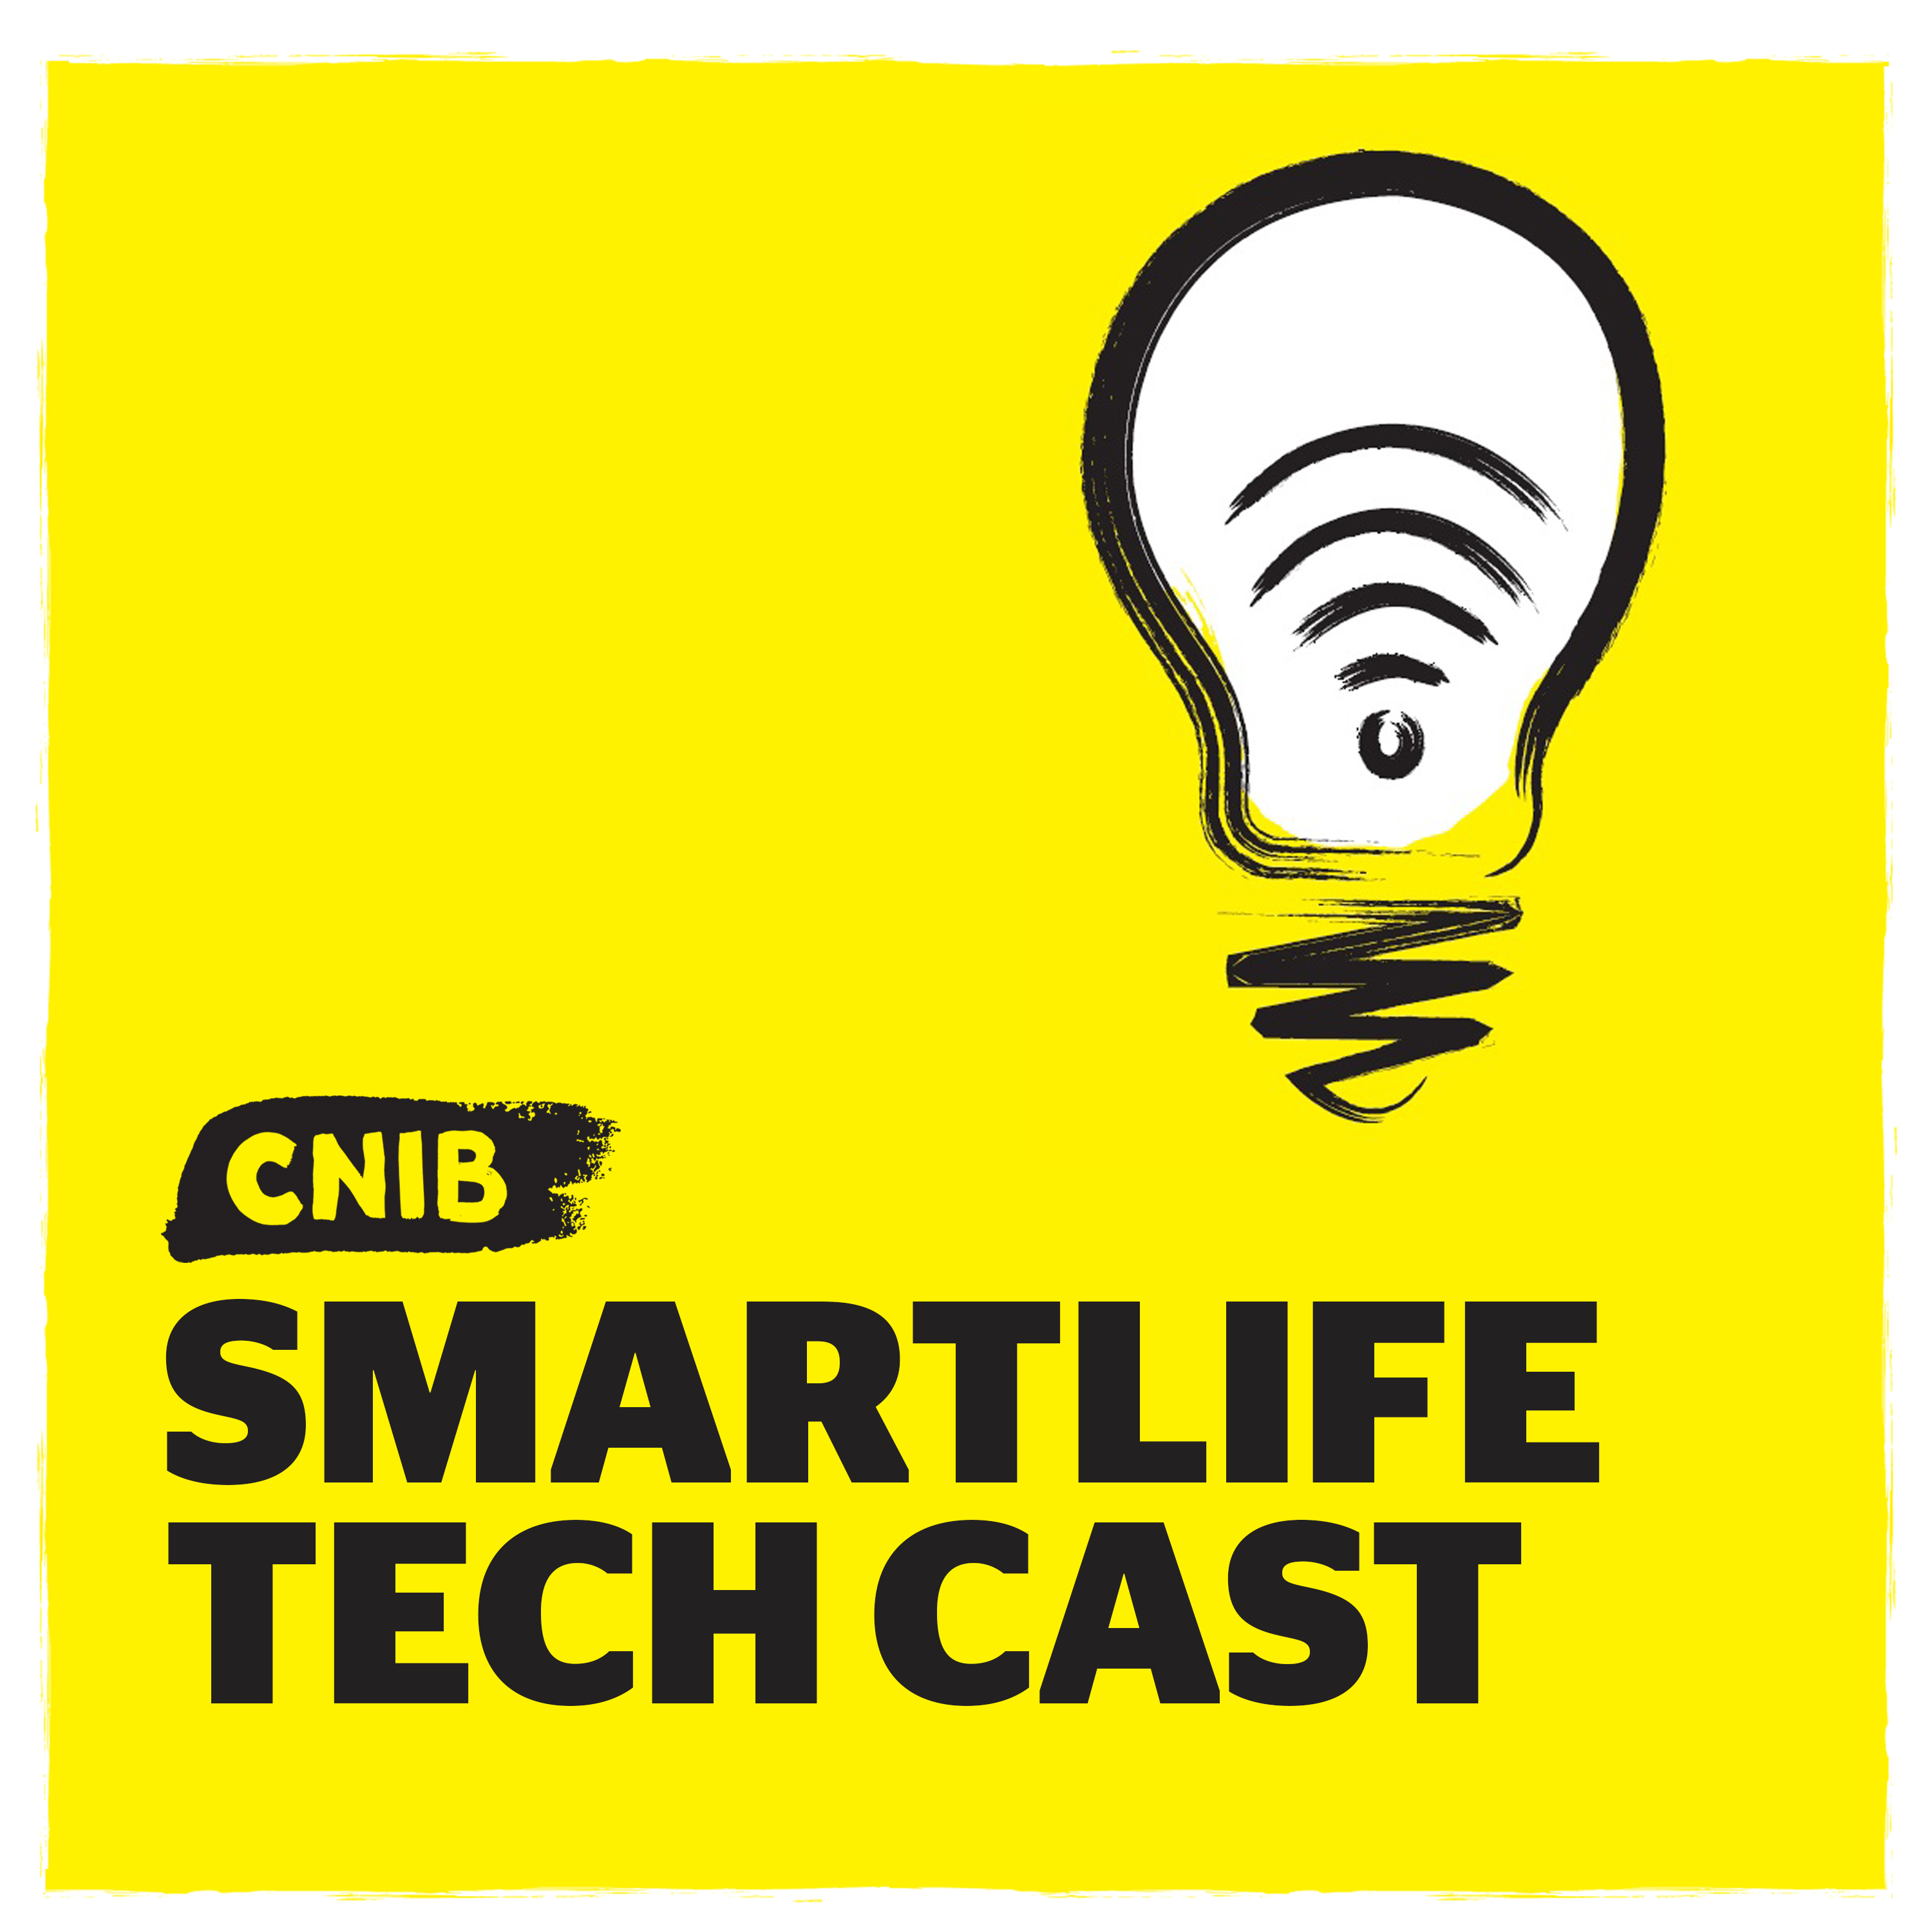 """CNIB SmartLife Tech Cast"" with light bulb icon on yellow."